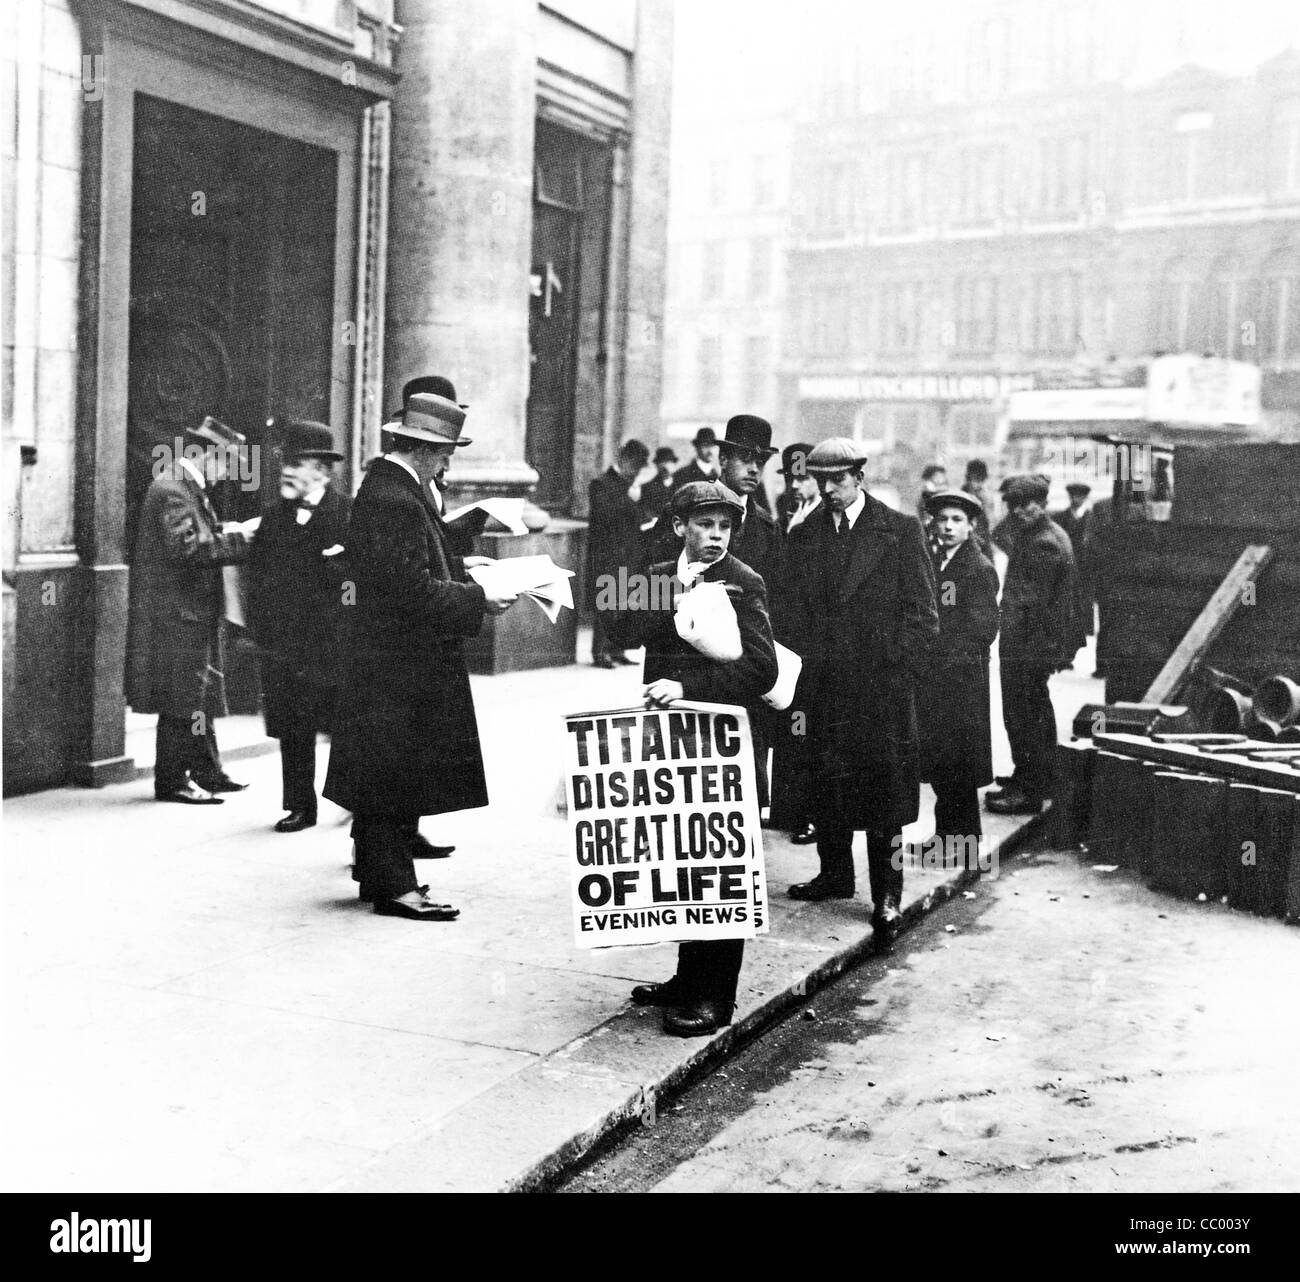 Titanic Disaster Newsboy, 1912, stands outside the headquarters of the White Star Line in Cockspur Street off Trafalgar - Stock Image